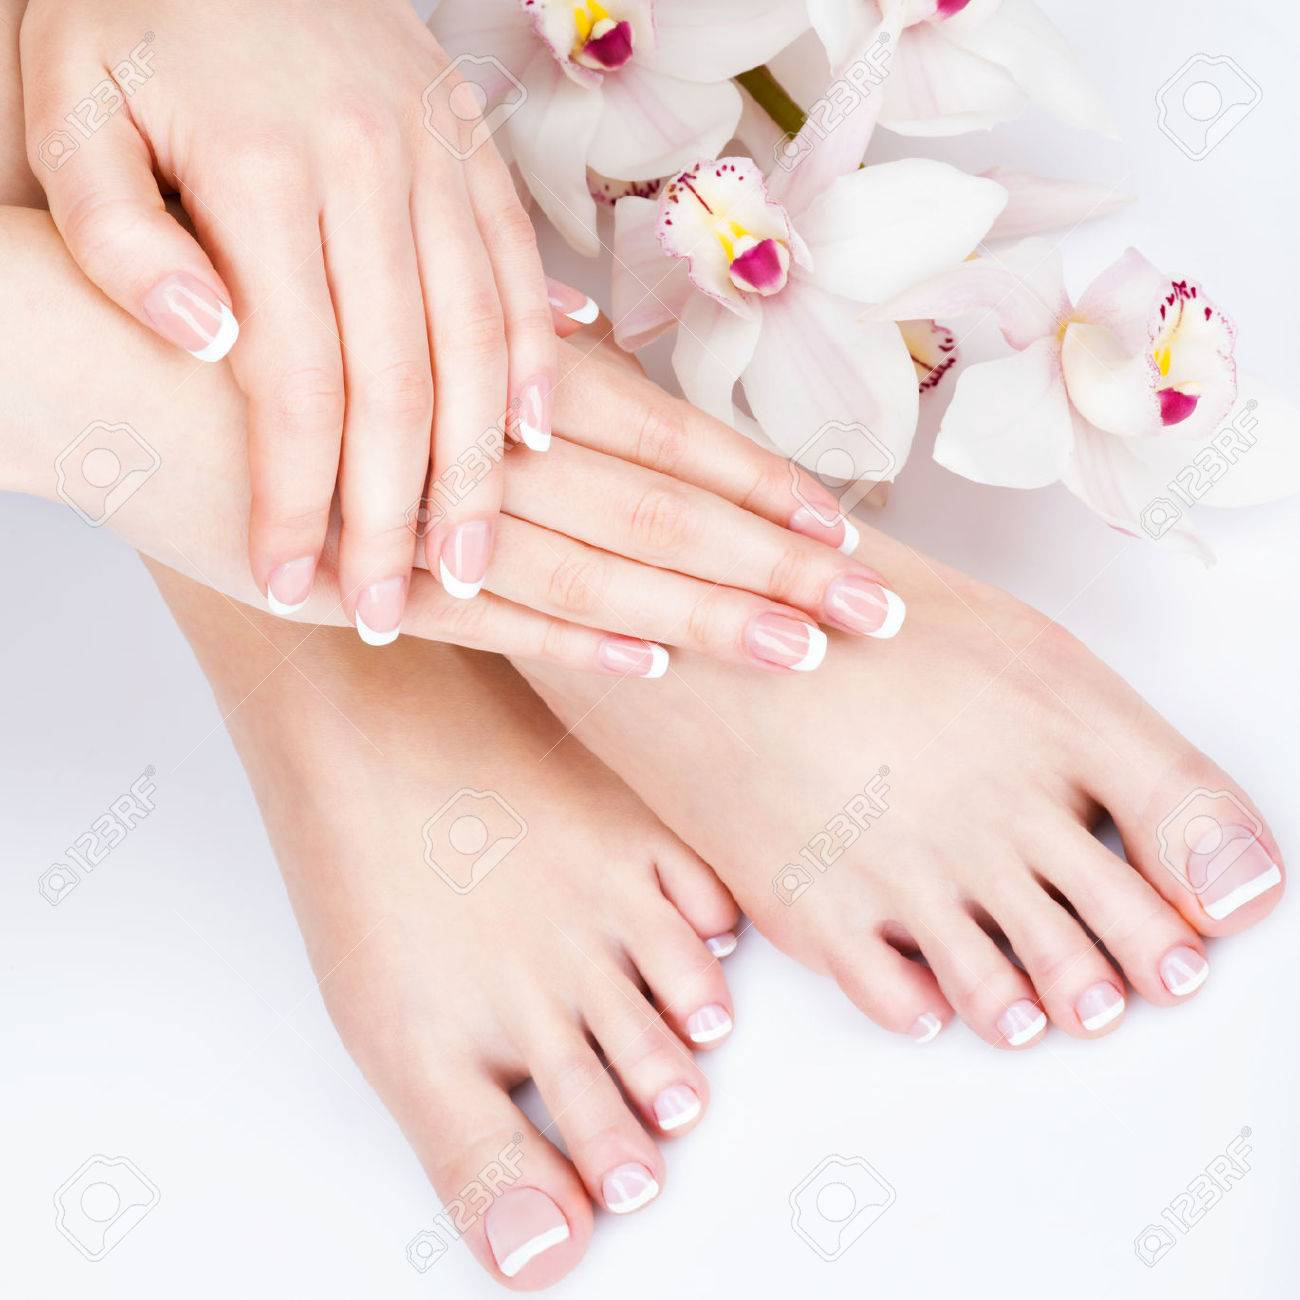 Closeup photo of a female feet at spa salon on pedicure and manicure procedure - Soft focus image Banque d'images - 54100930